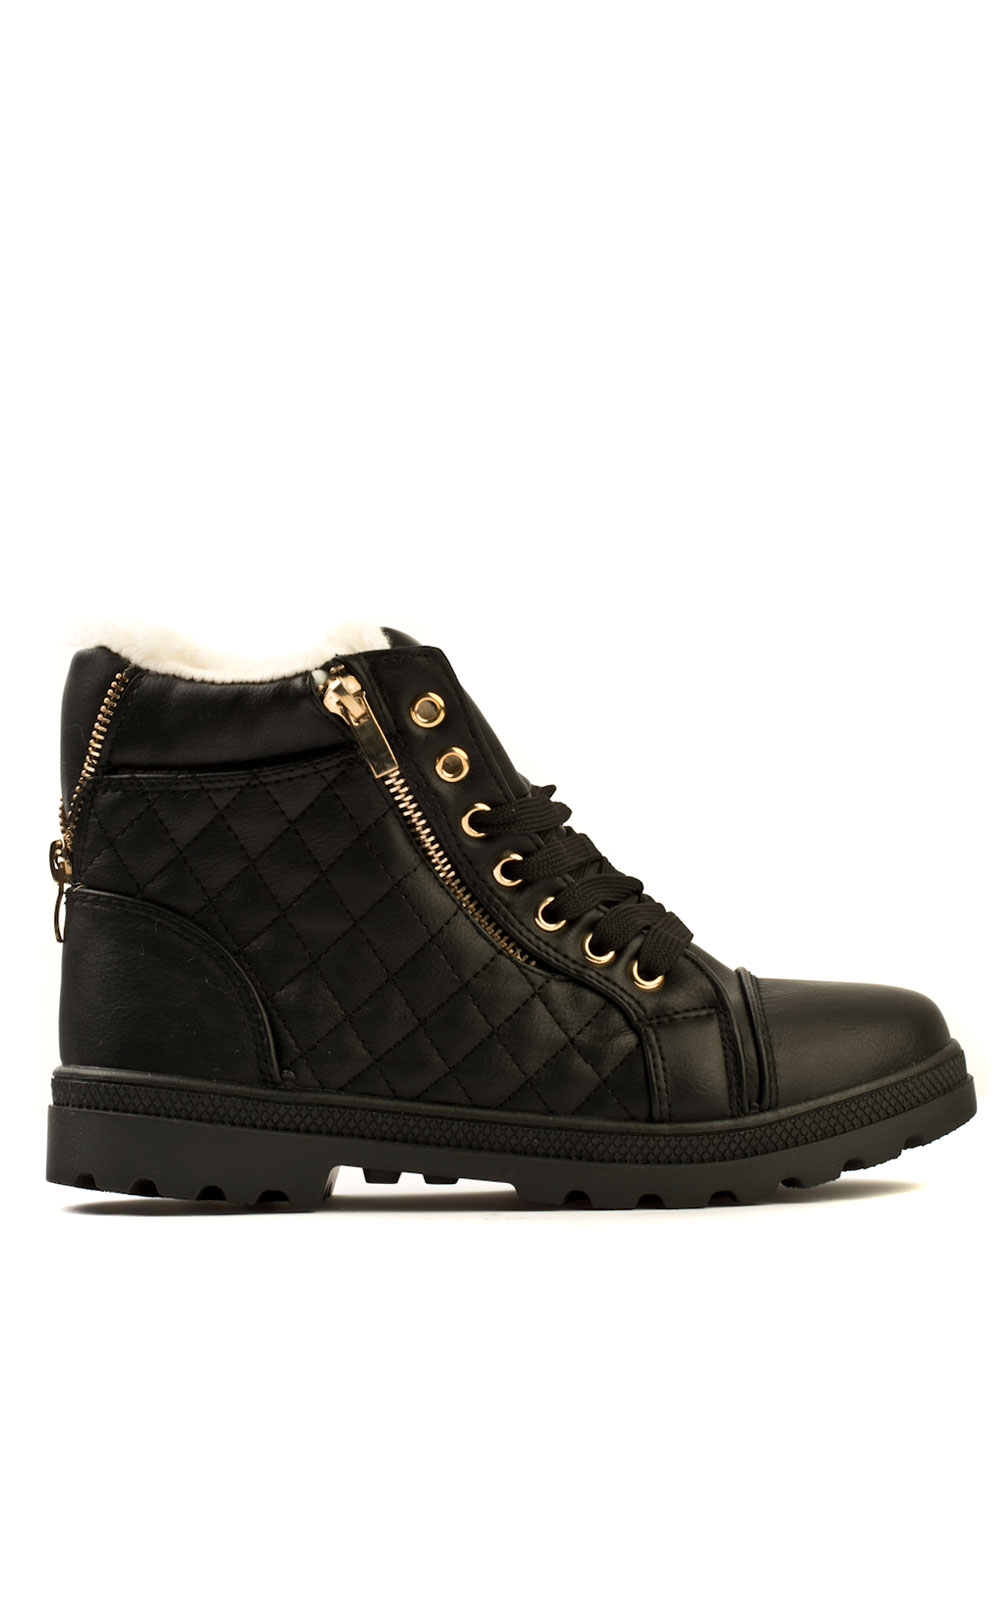 iKrush Ellie Quilted Fur Lined Boots